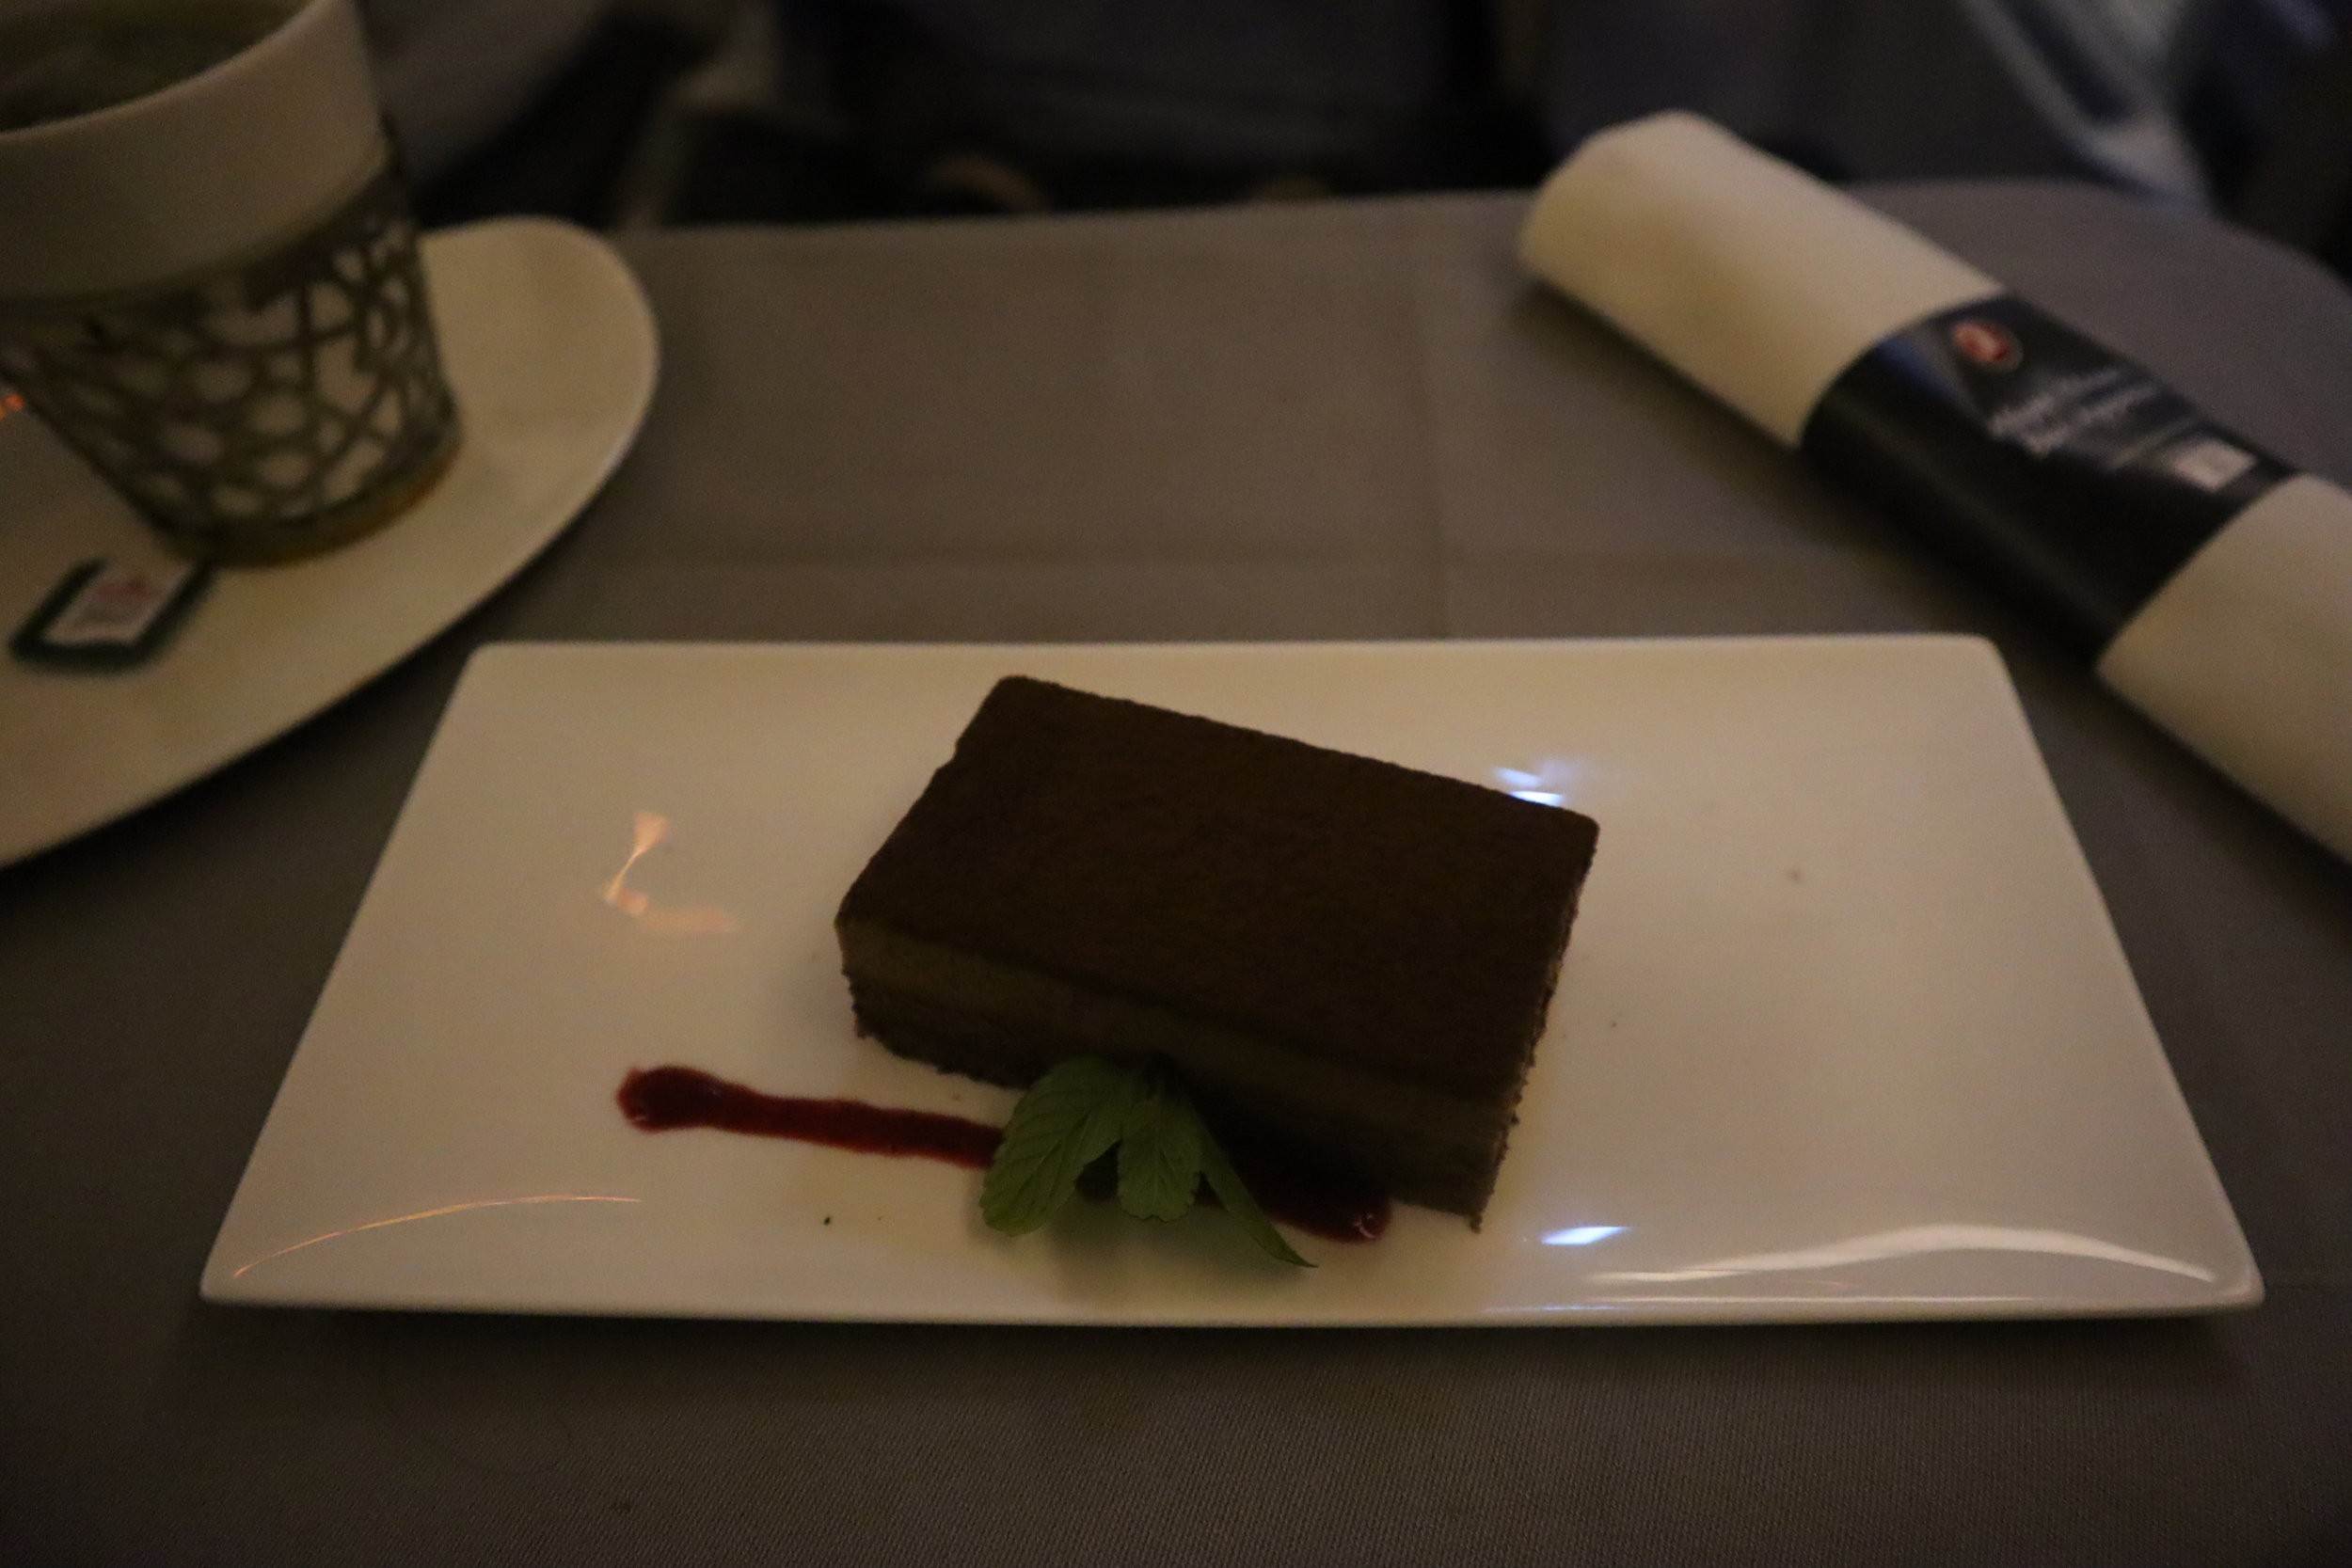 Turkish Airlines 777 business class – Chocolate nougat cake